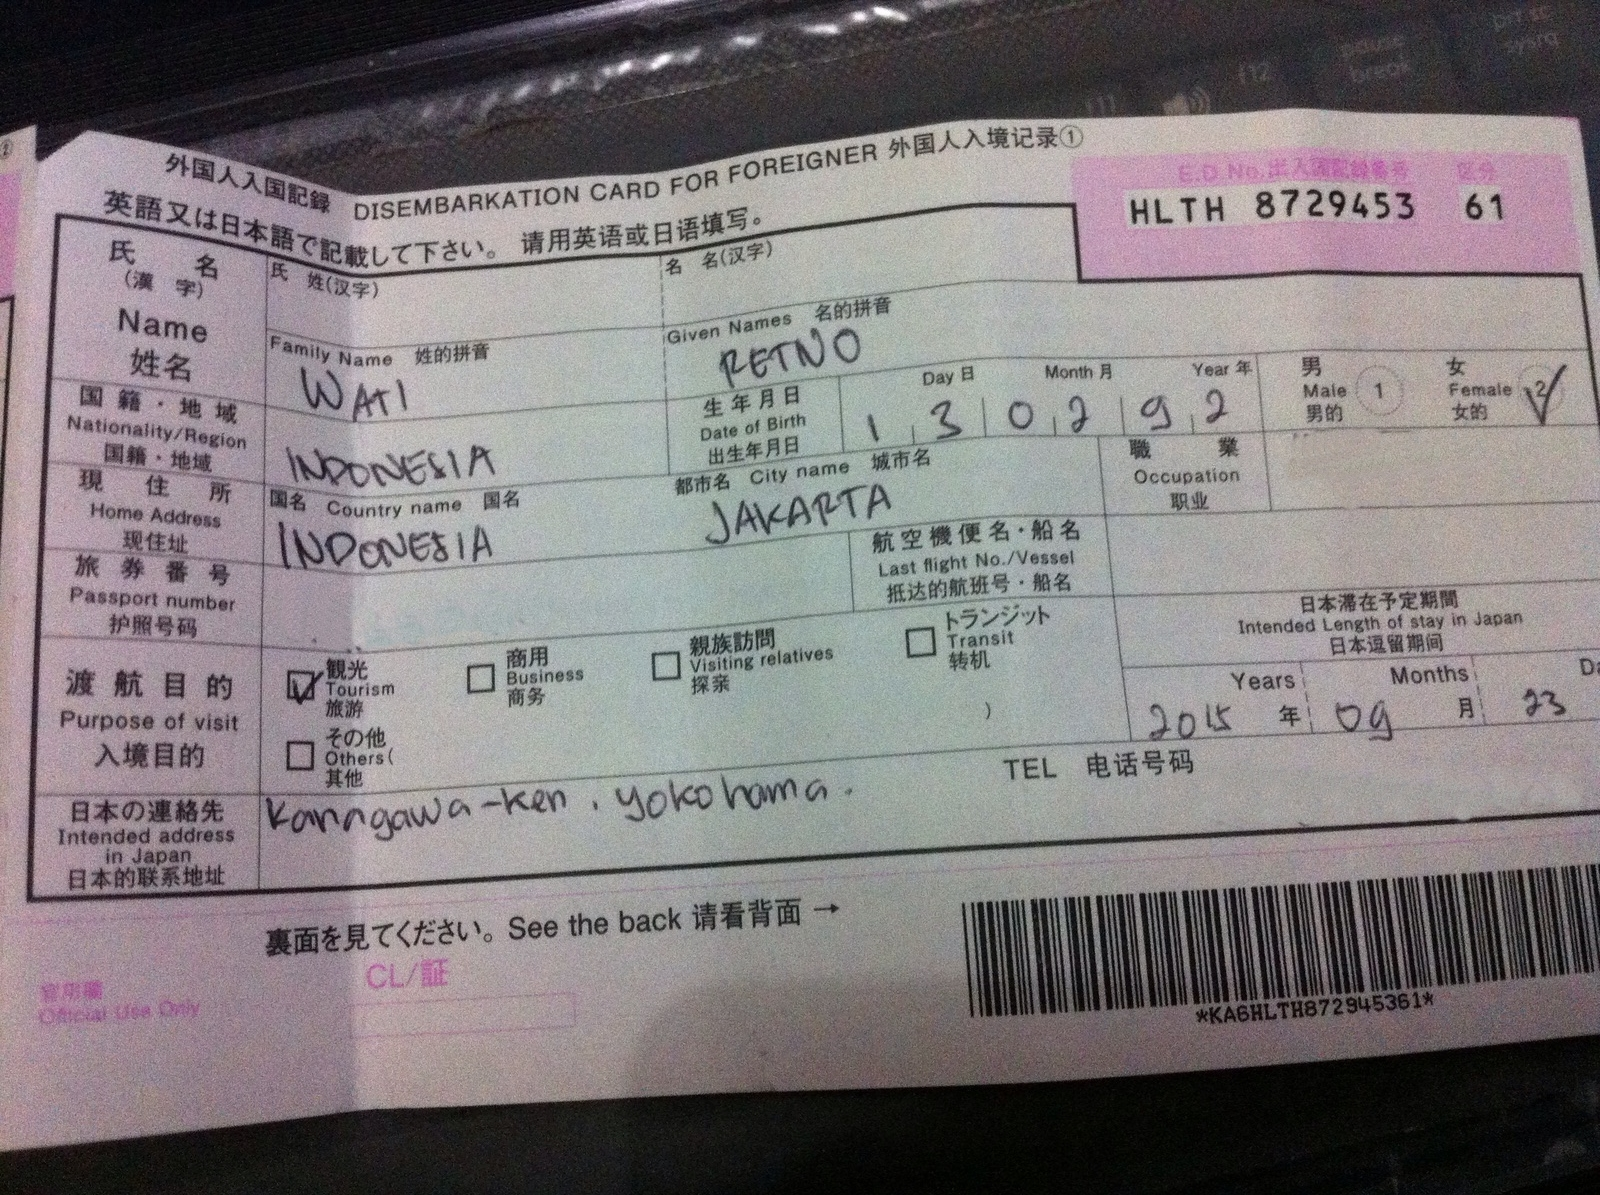 Arrival Card Disembarkation Card For Foreigners In Japan